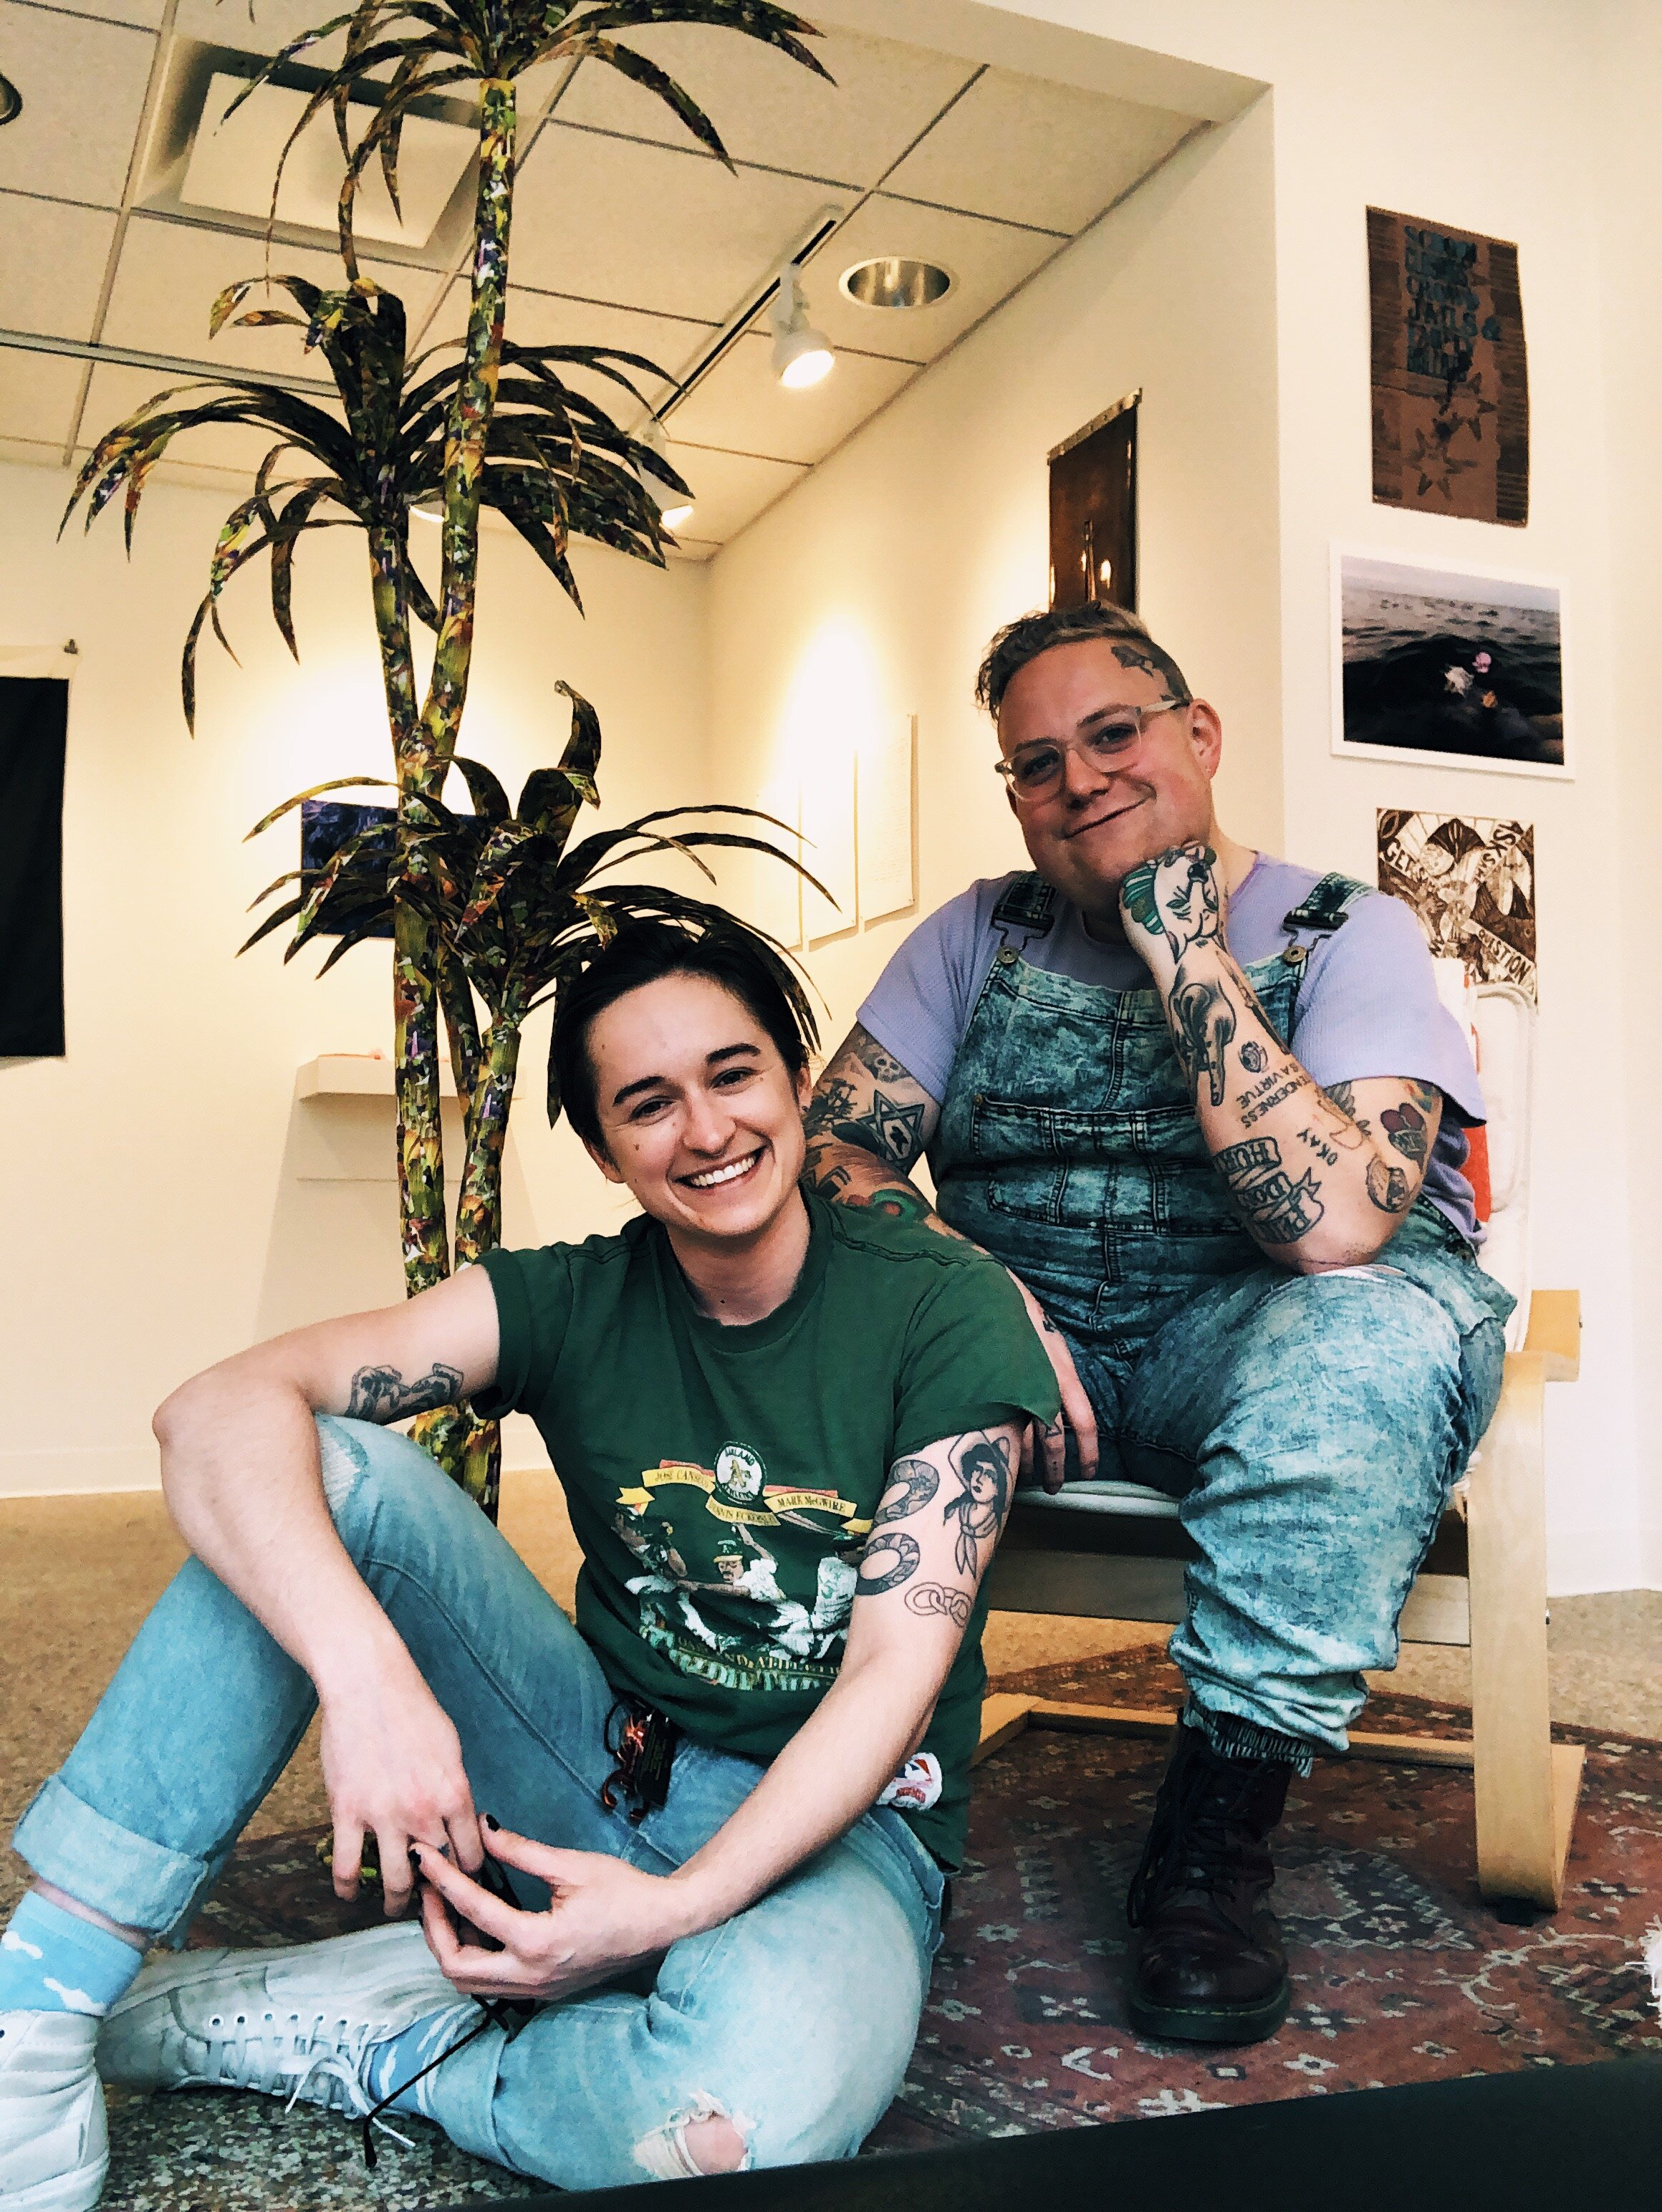 A. Gentalen with collaborator and artist A. Klass, 2019